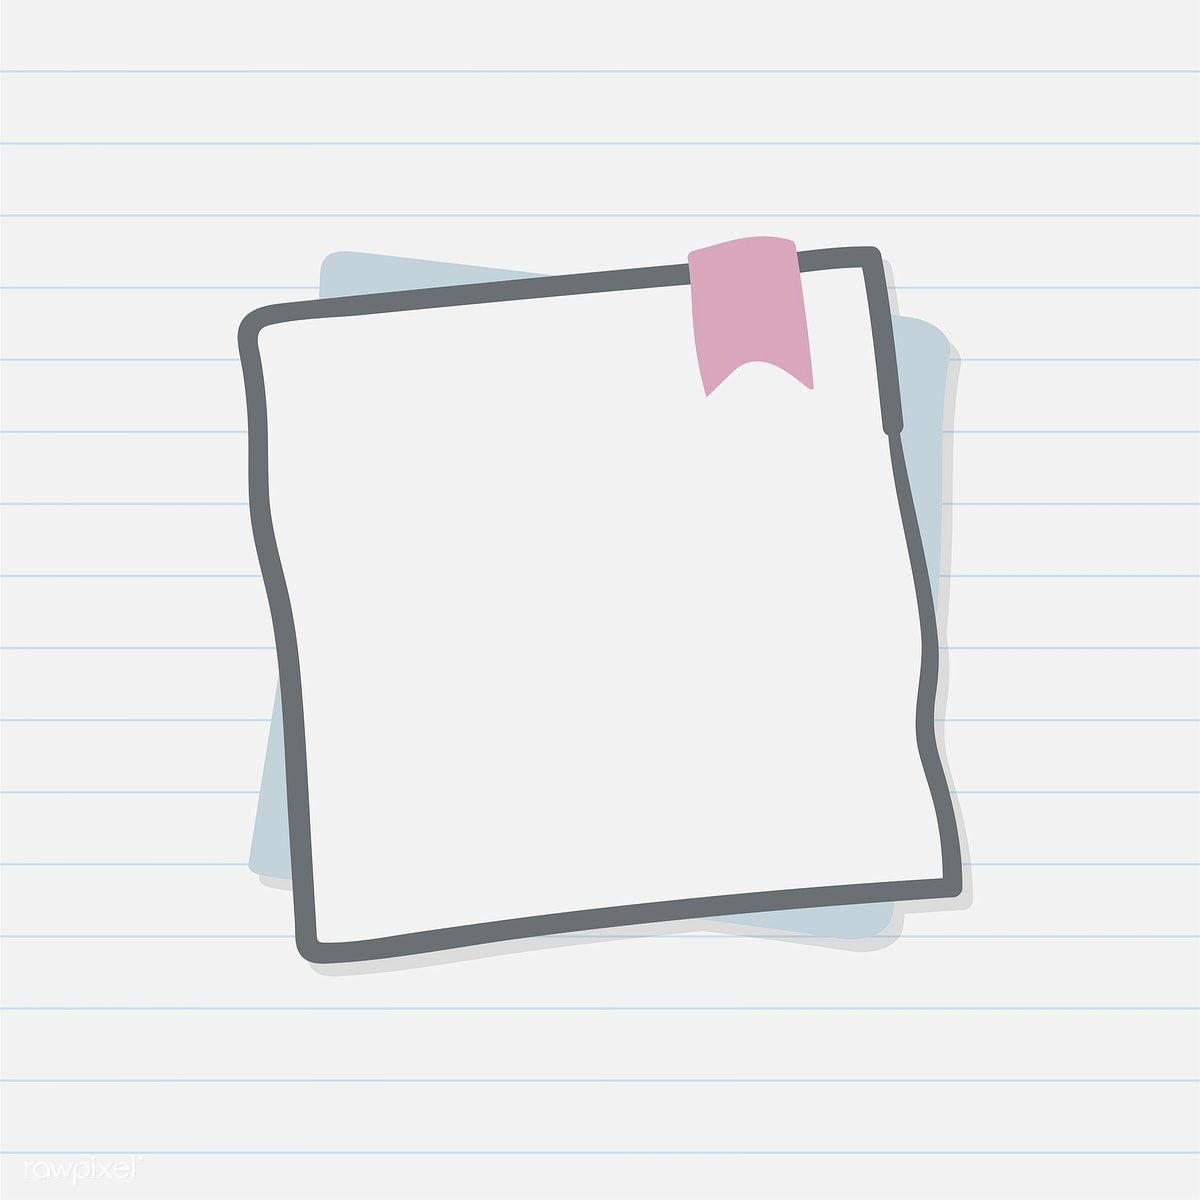 Blank paper note illustration free image by